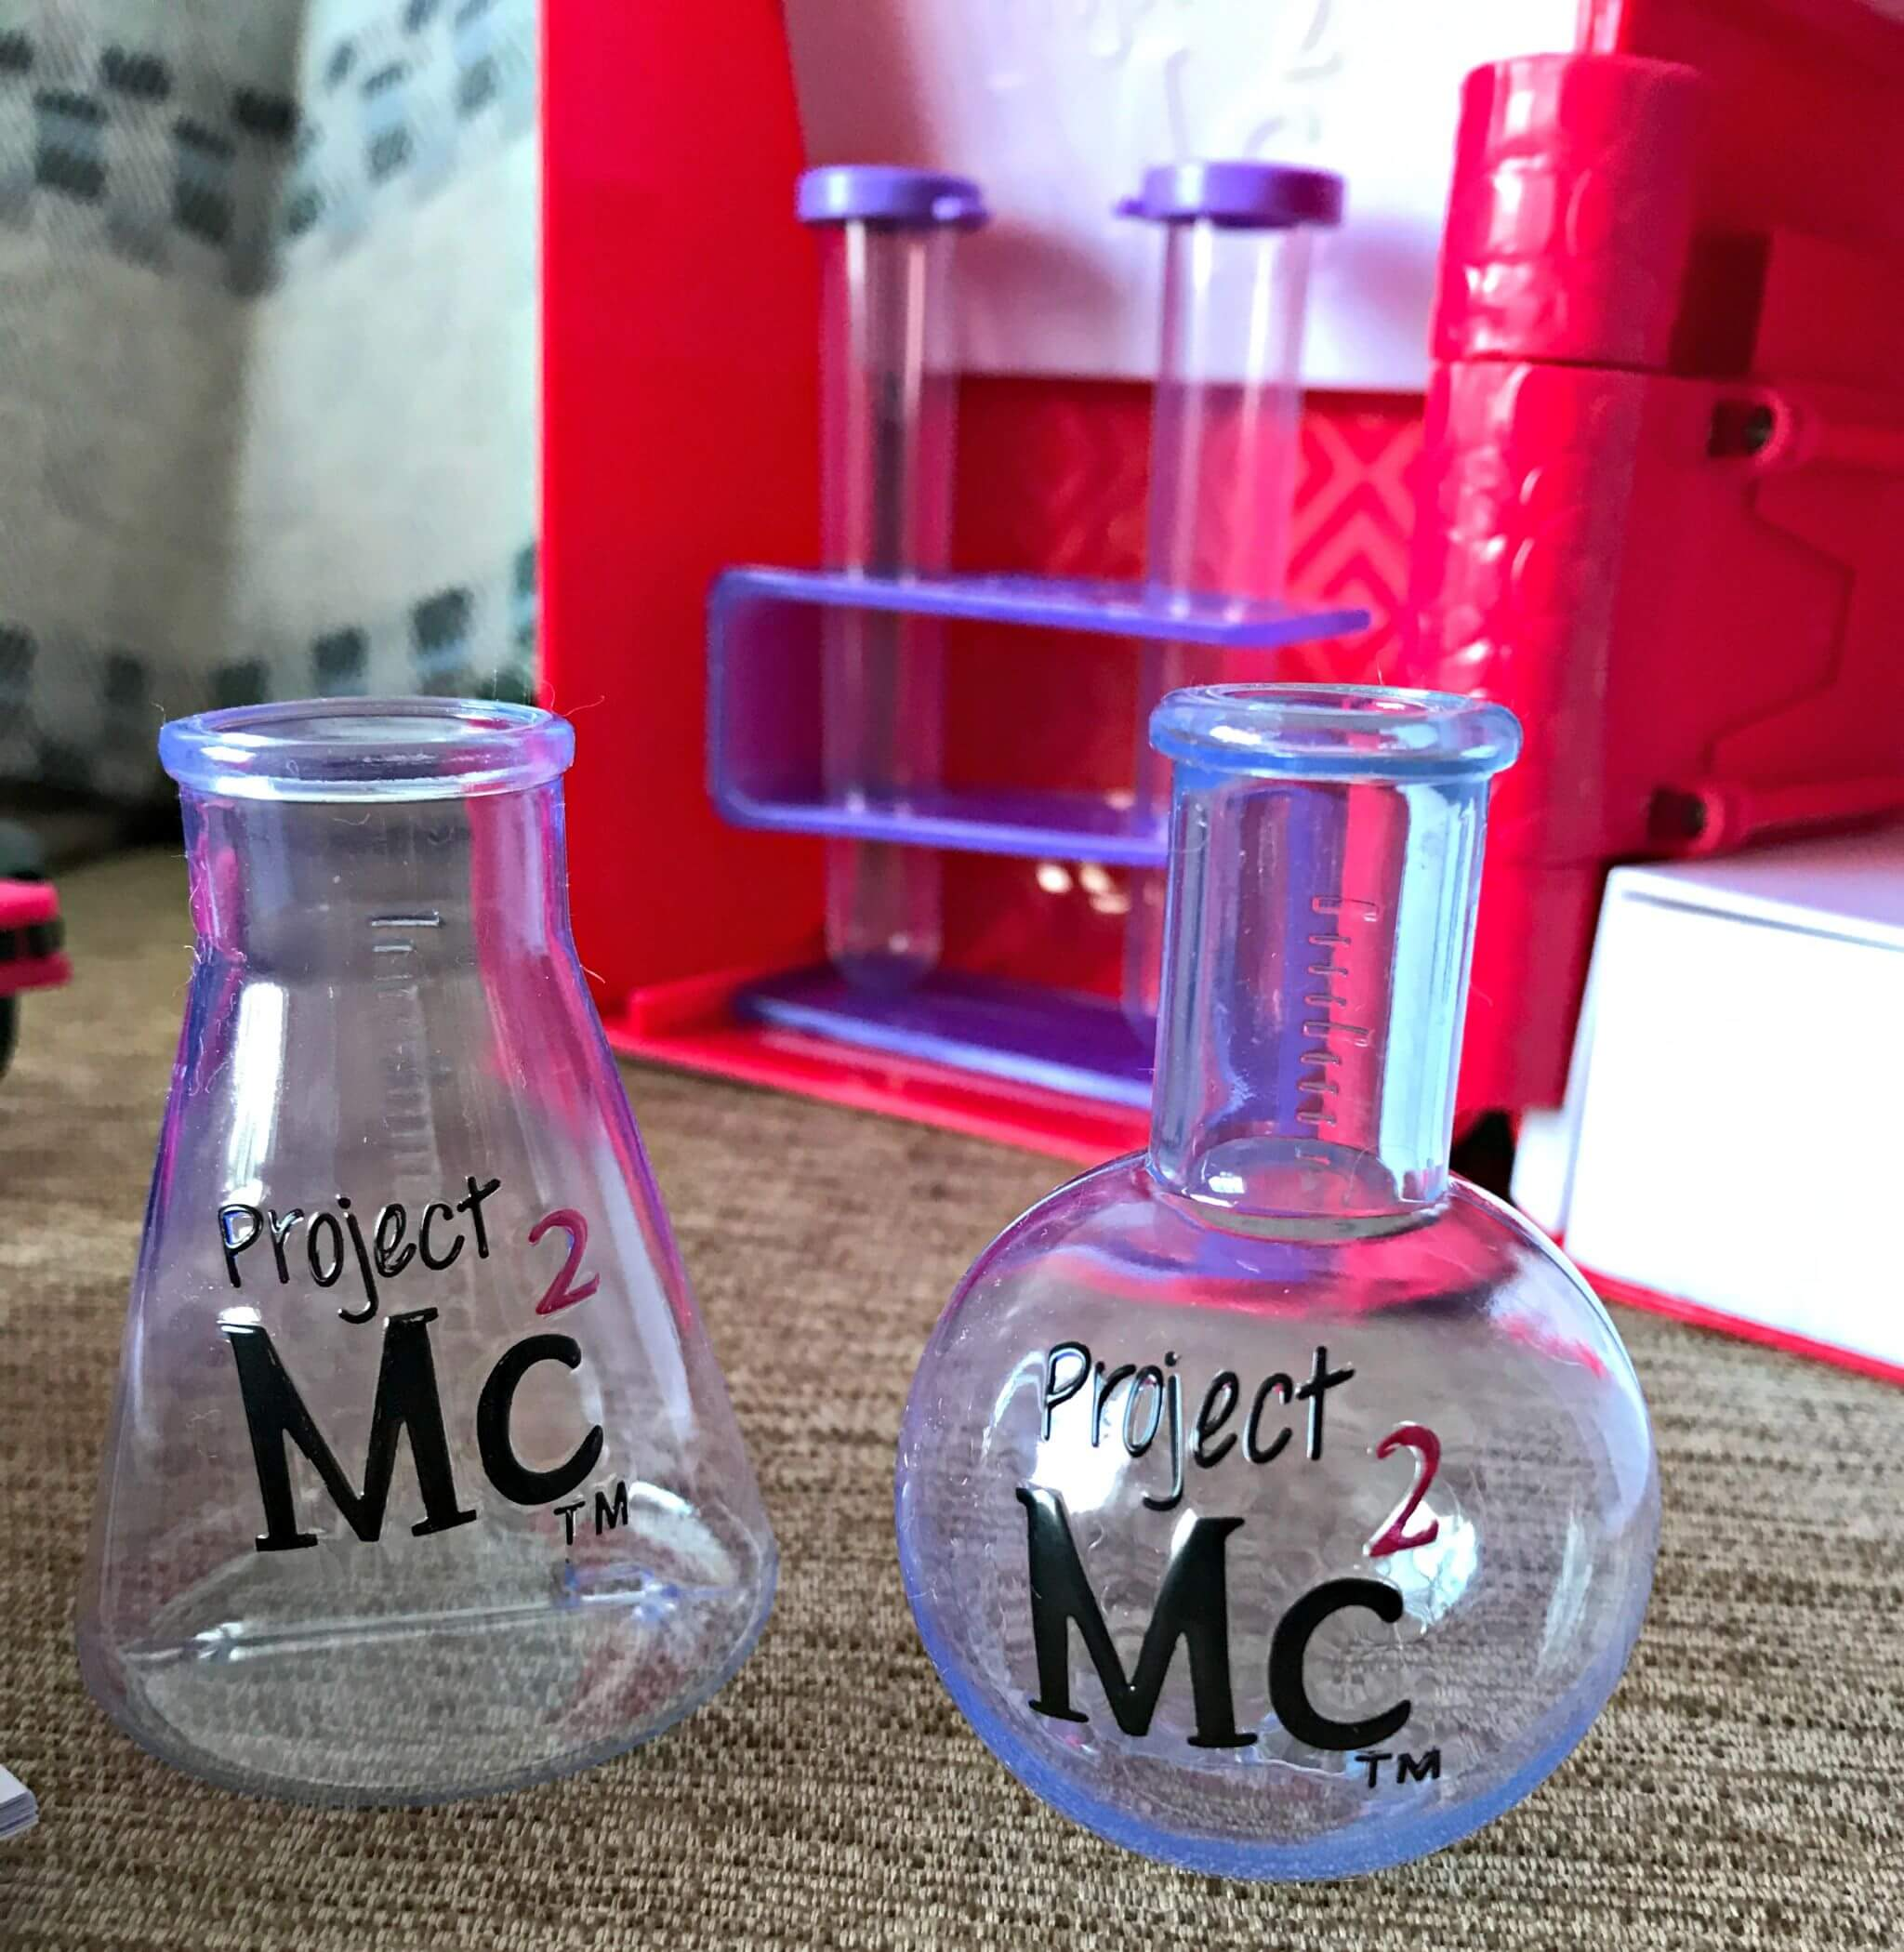 Project Mc2 Ultimate Lab Kit - test tubes and bottles